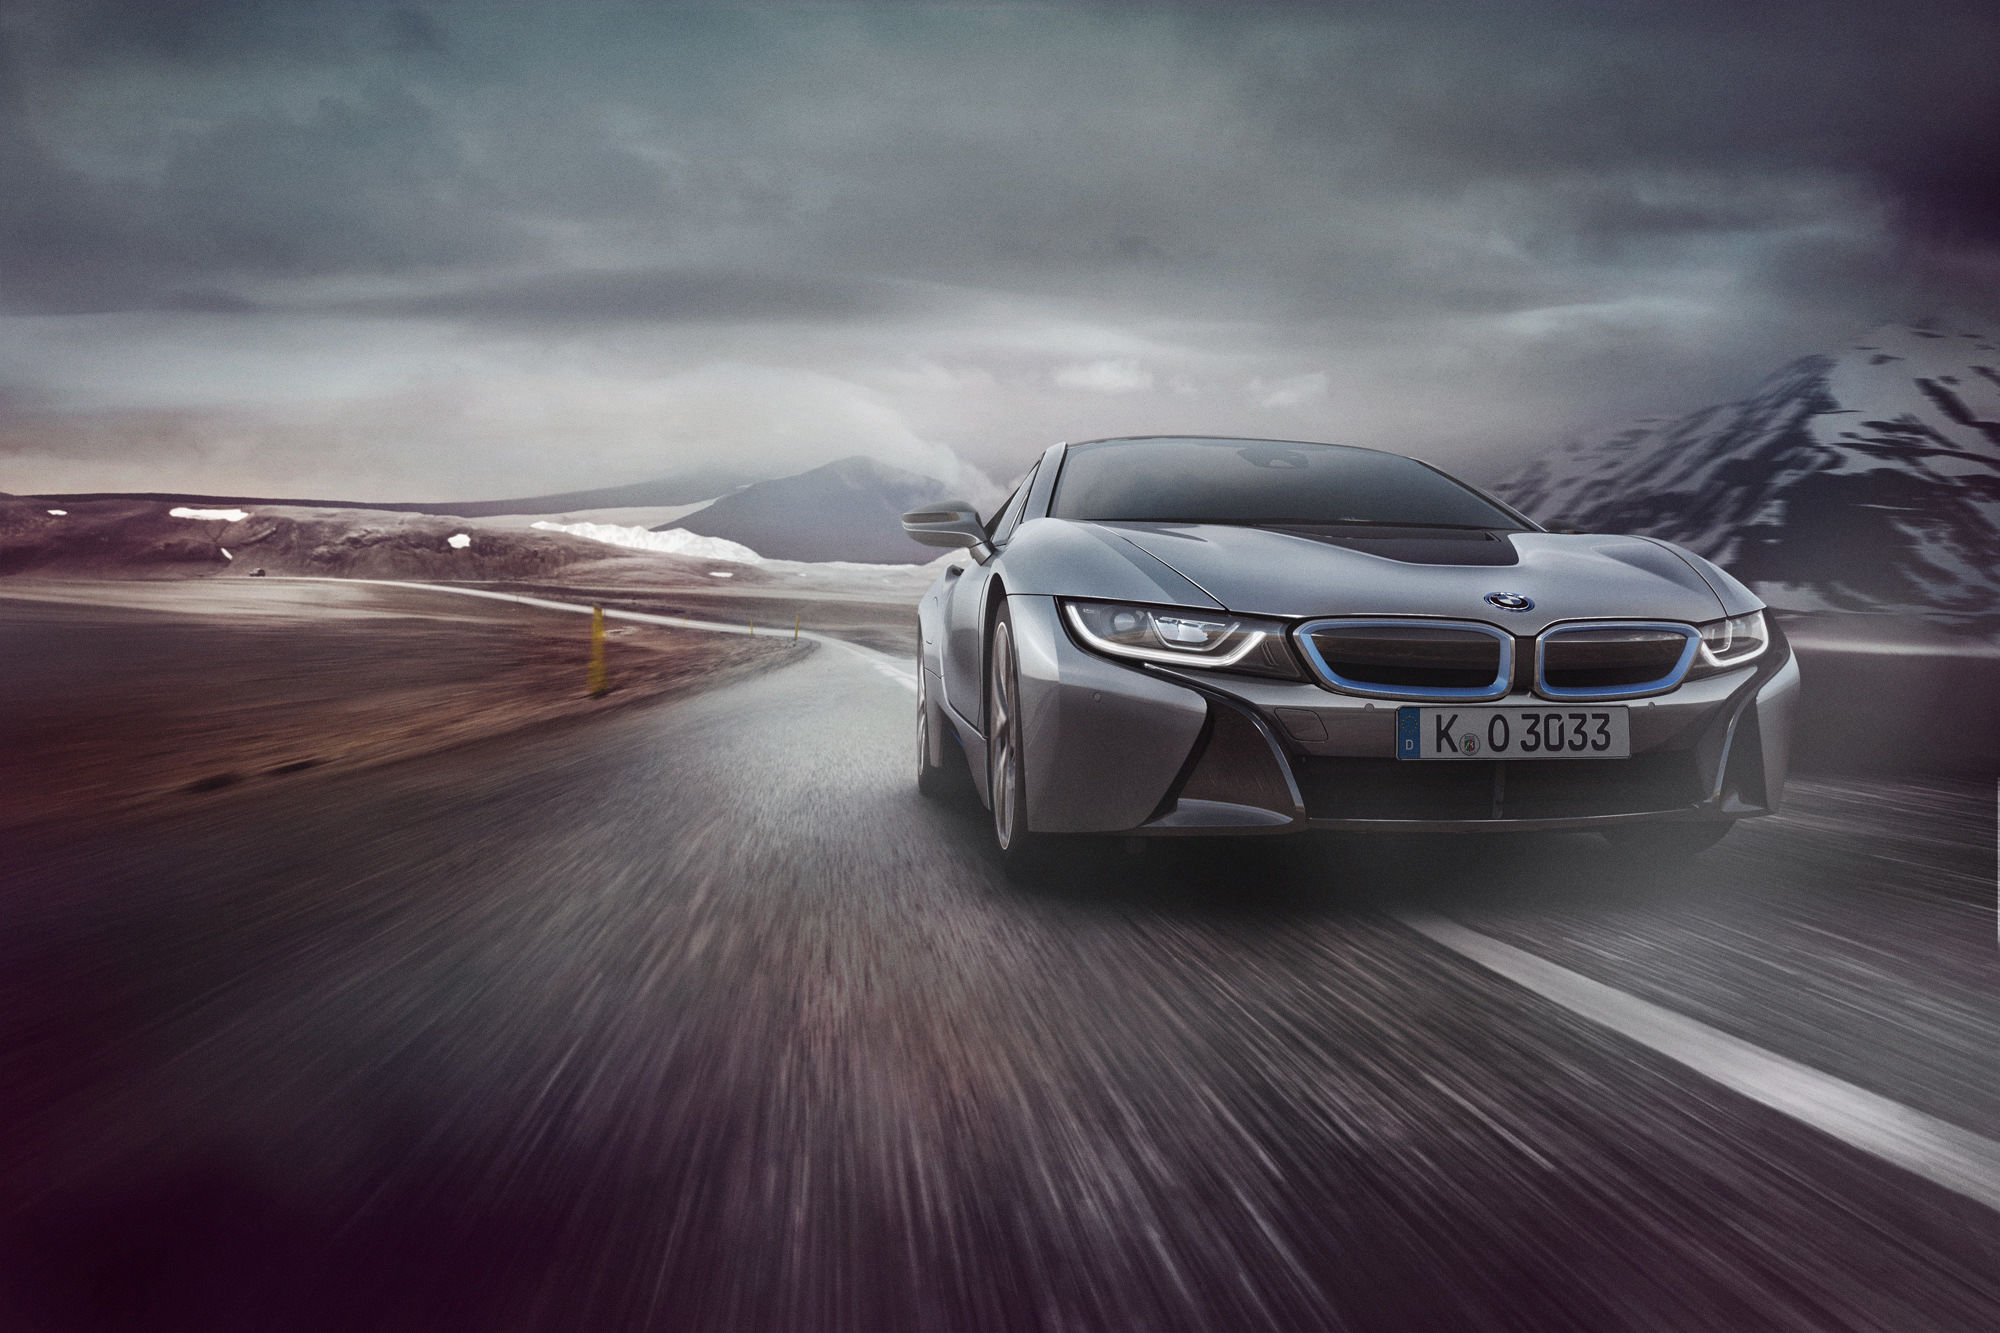 """BEN & MARTIN shooting """"i8land"""" w/ the BMW i8 in Iceland"""